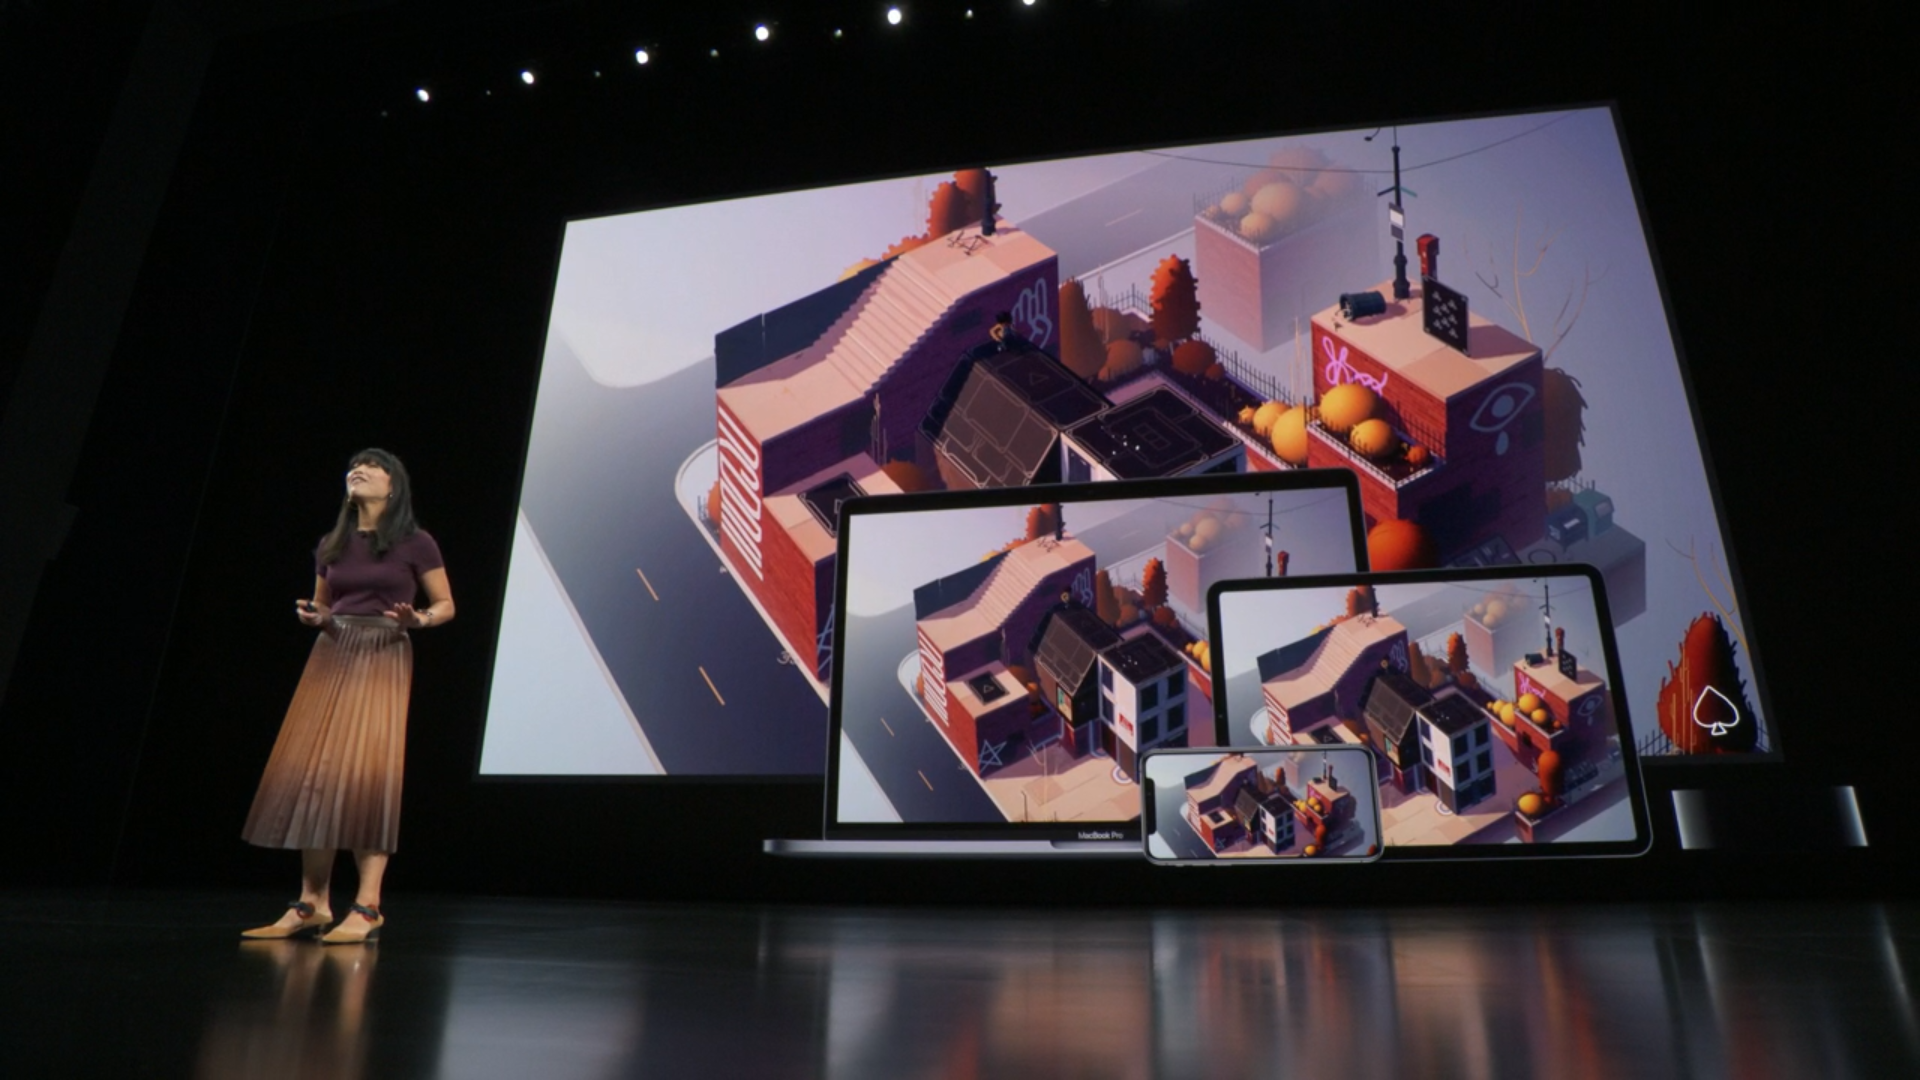 Apple Arcade will launch this September 19 with over 100 games including titles from Konami and Capcom 1